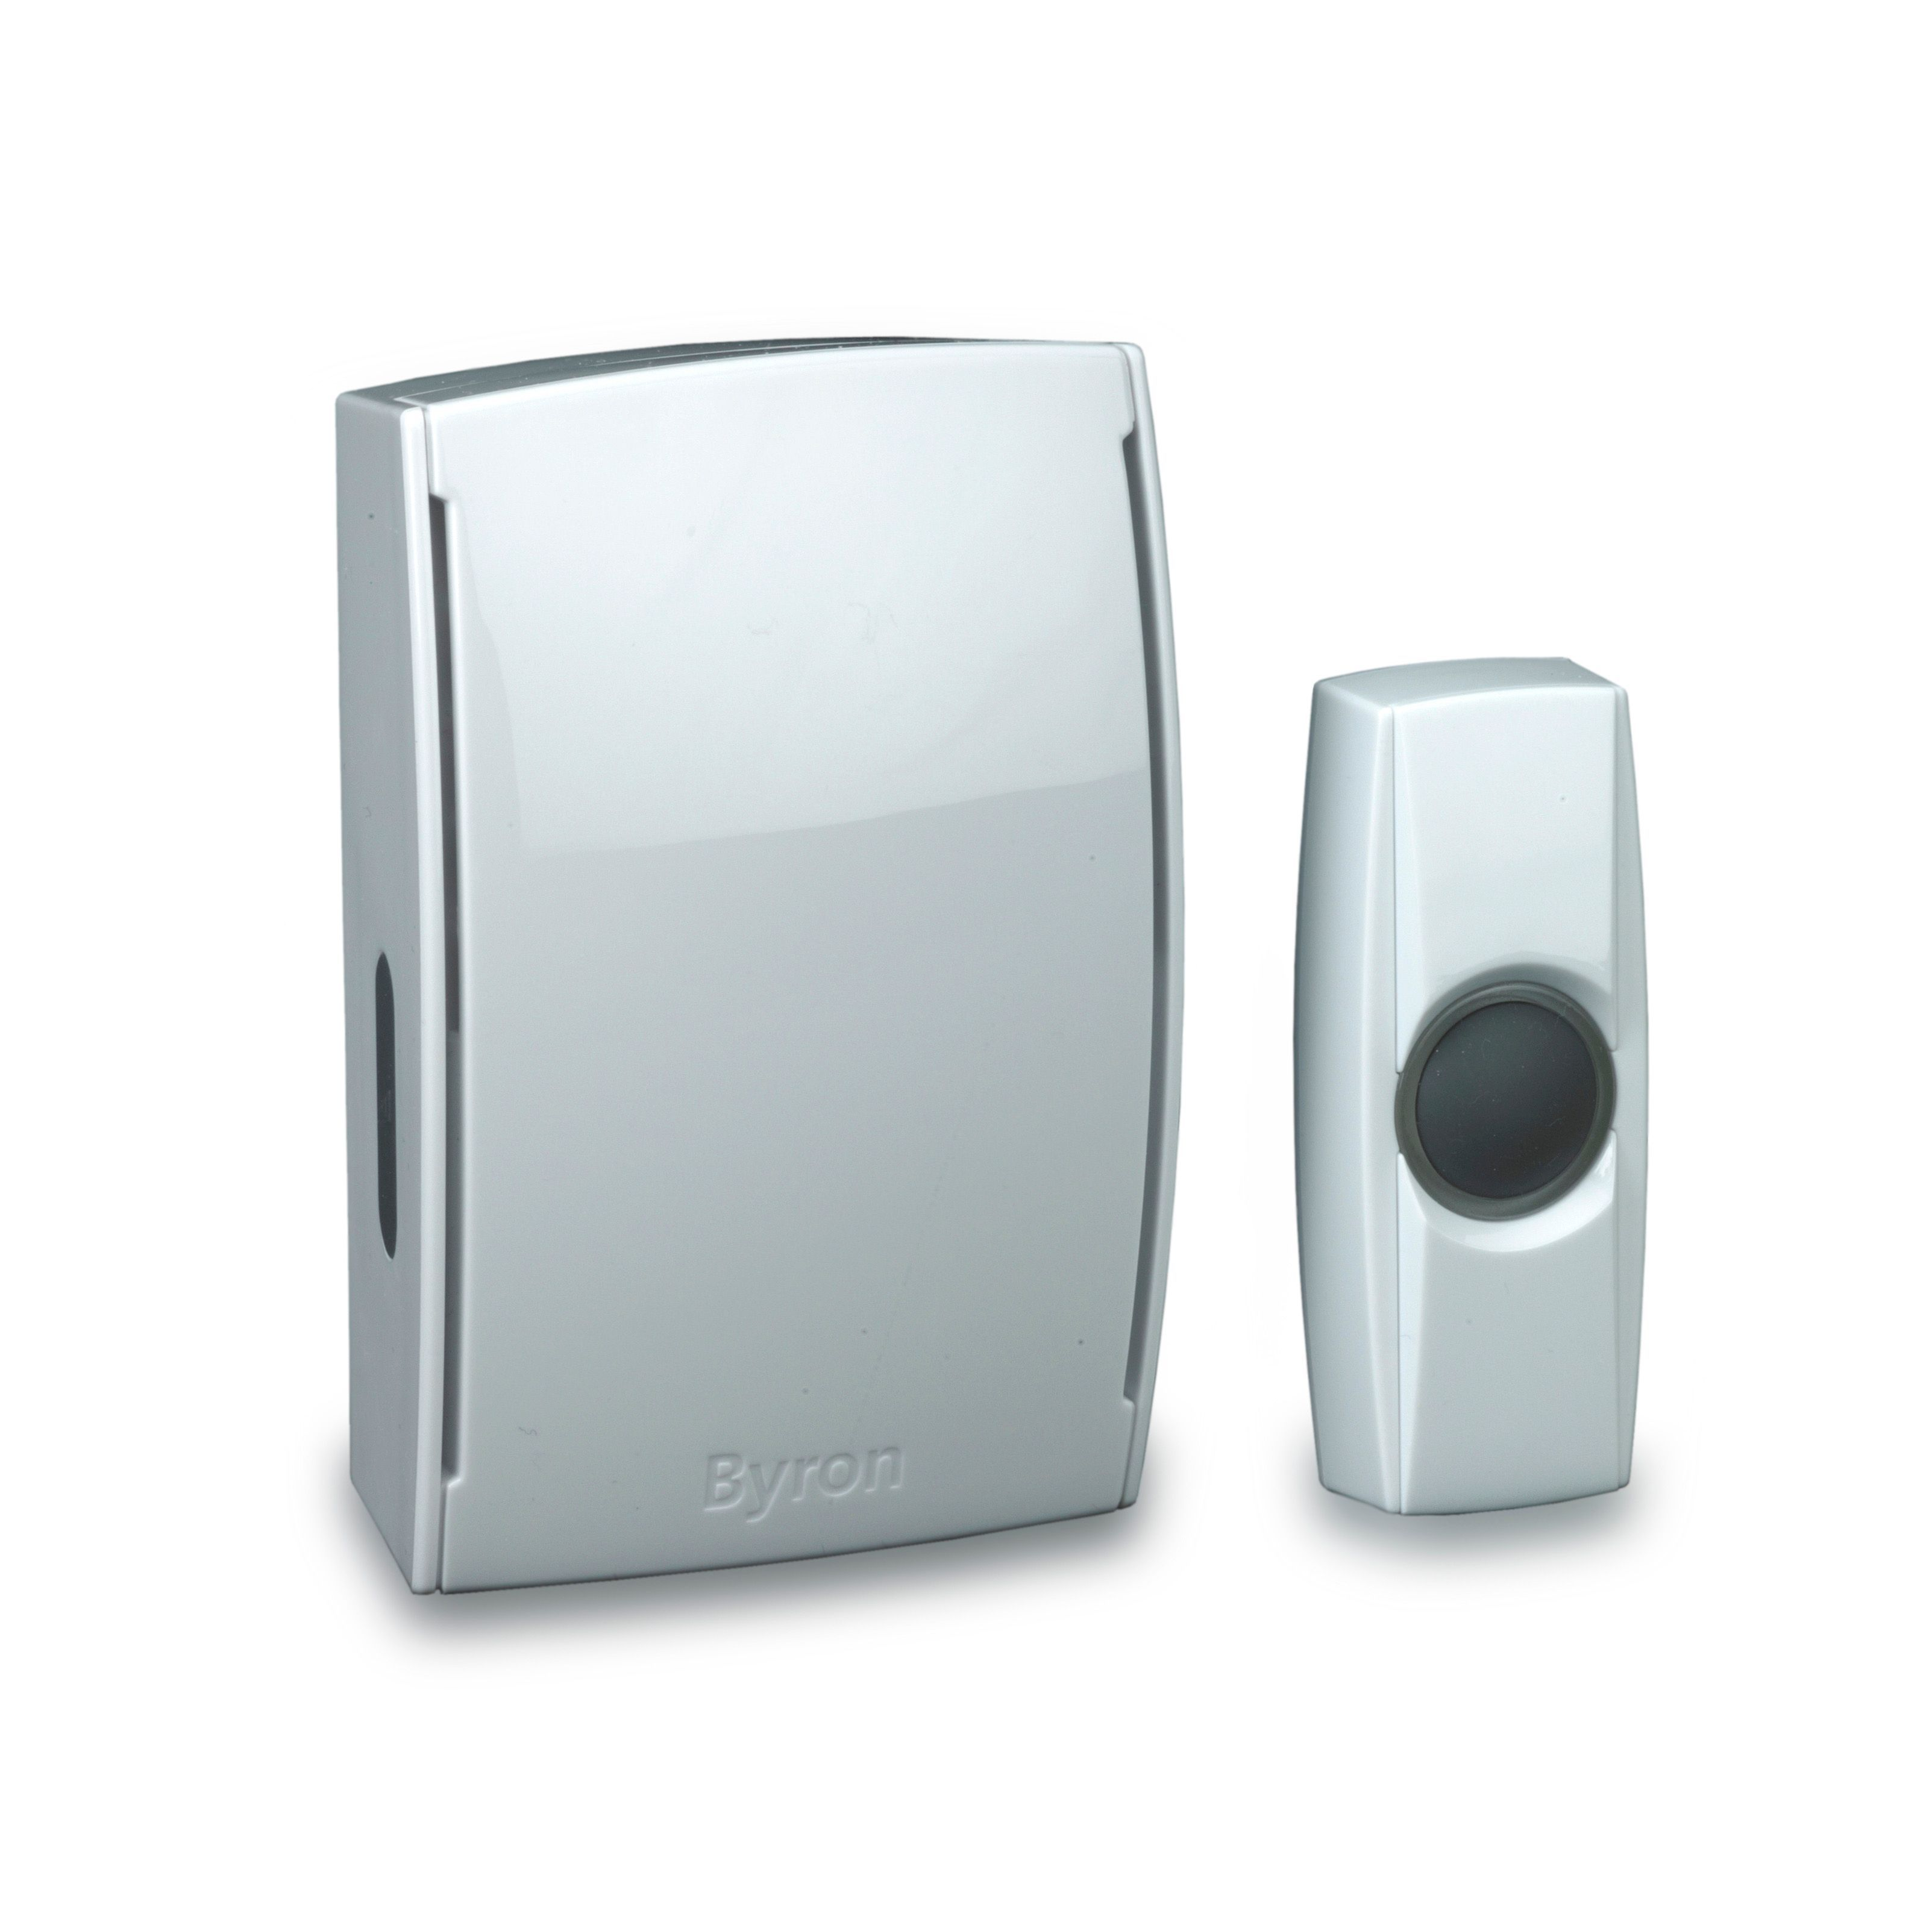 if home its a bell but streams to t you is more s com detection in doorbell portal dims has isn your know want quality ring gracing video powerful aolcdn door image motion uri helpful pro who it limitations sleeker